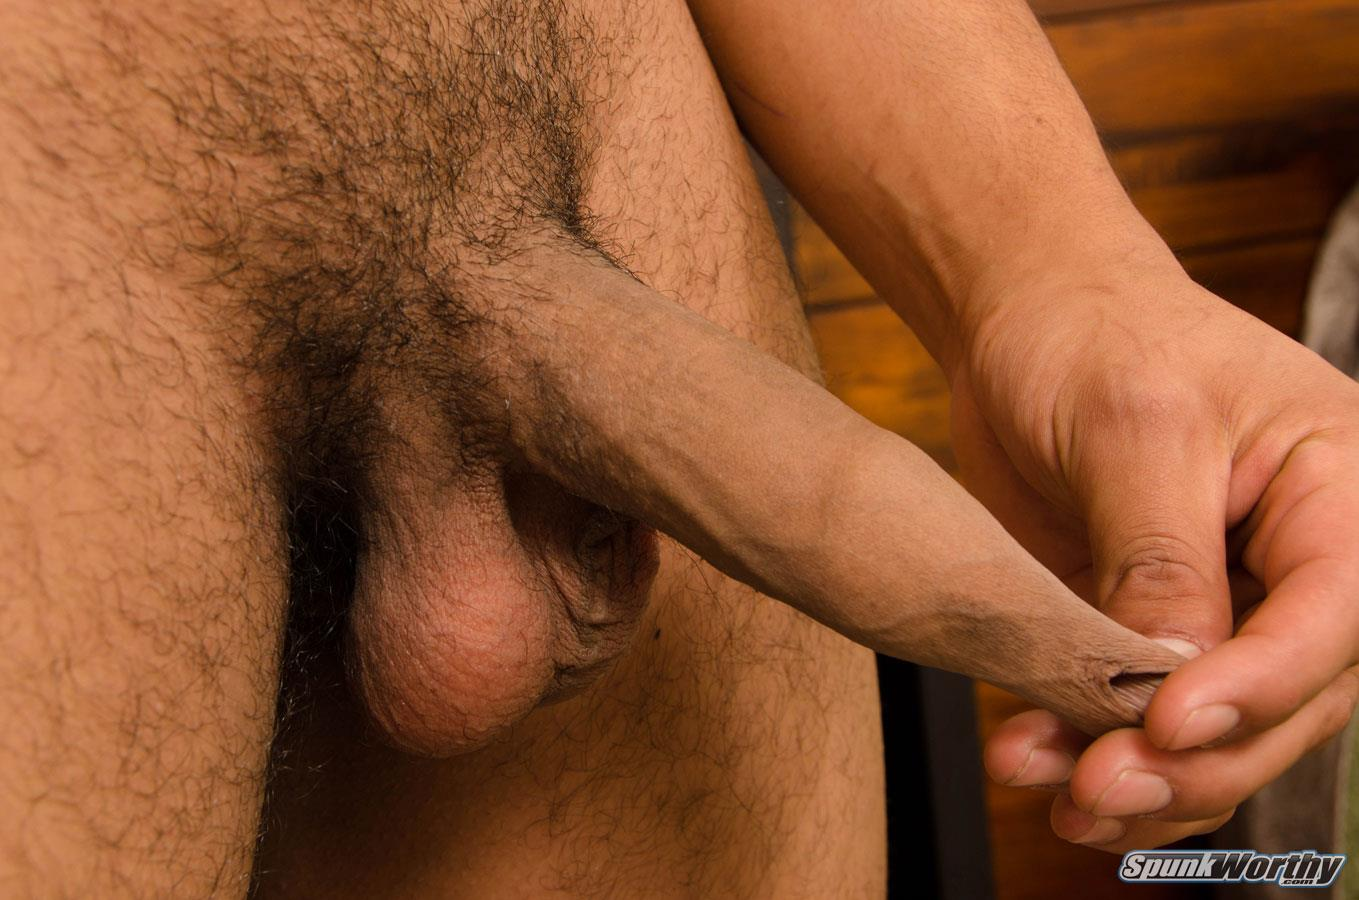 Dick gay naked picture uncut